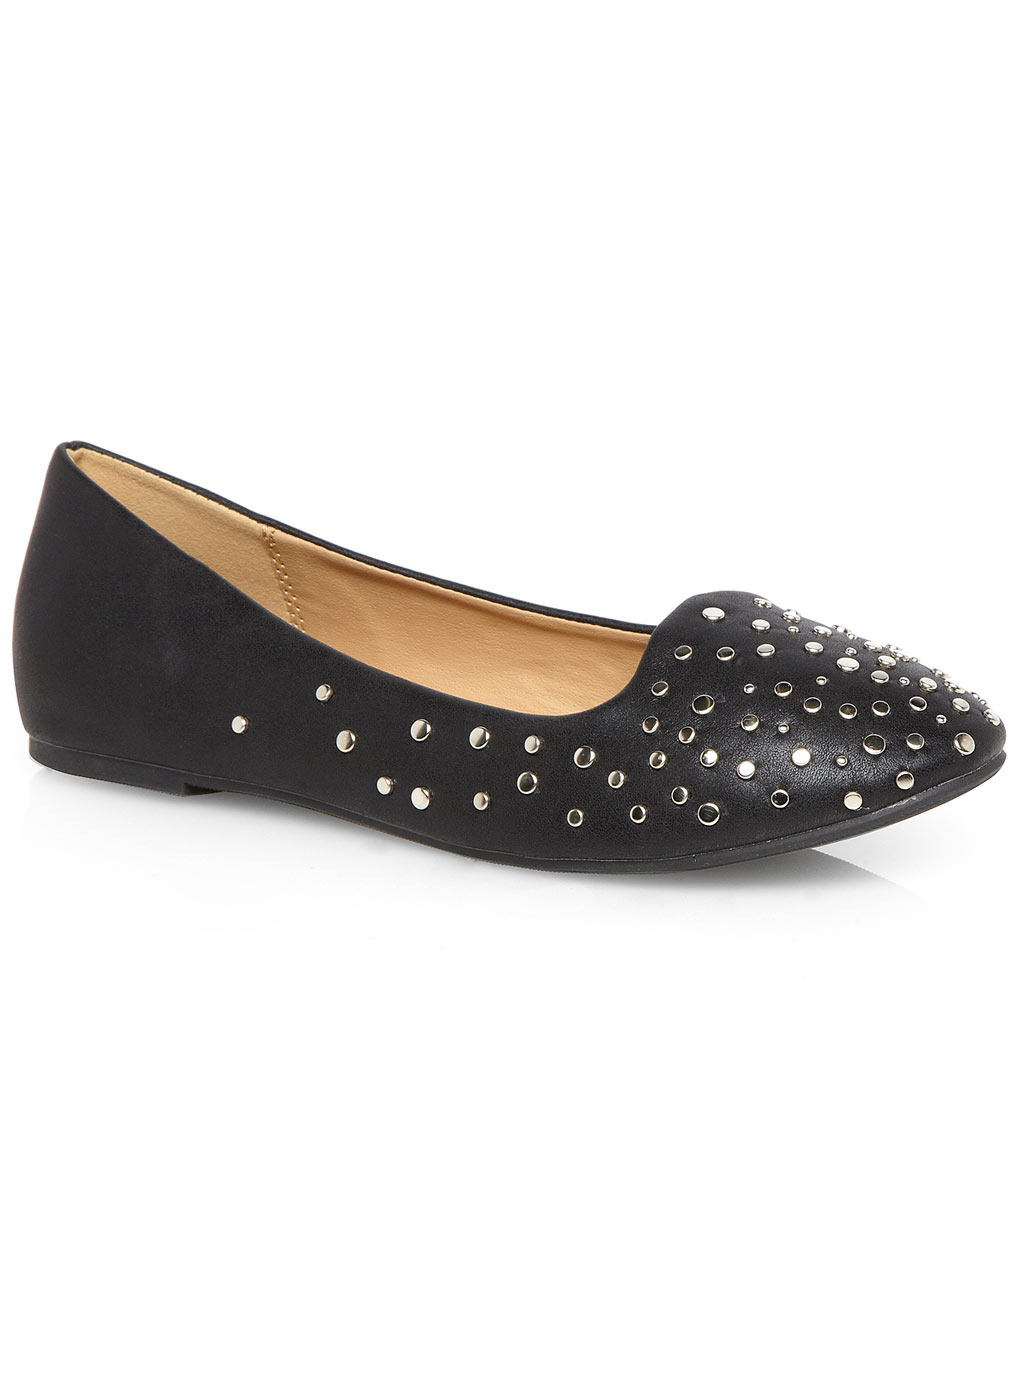 Black Metallic Studded Slipper Shoes - secondary colour: silver; predominant colour: black; occasions: casual, creative work; material: faux leather; heel height: flat; embellishment: studs; toe: round toe; style: ballerinas / pumps; finish: plain; pattern: plain; season: s/s 2014